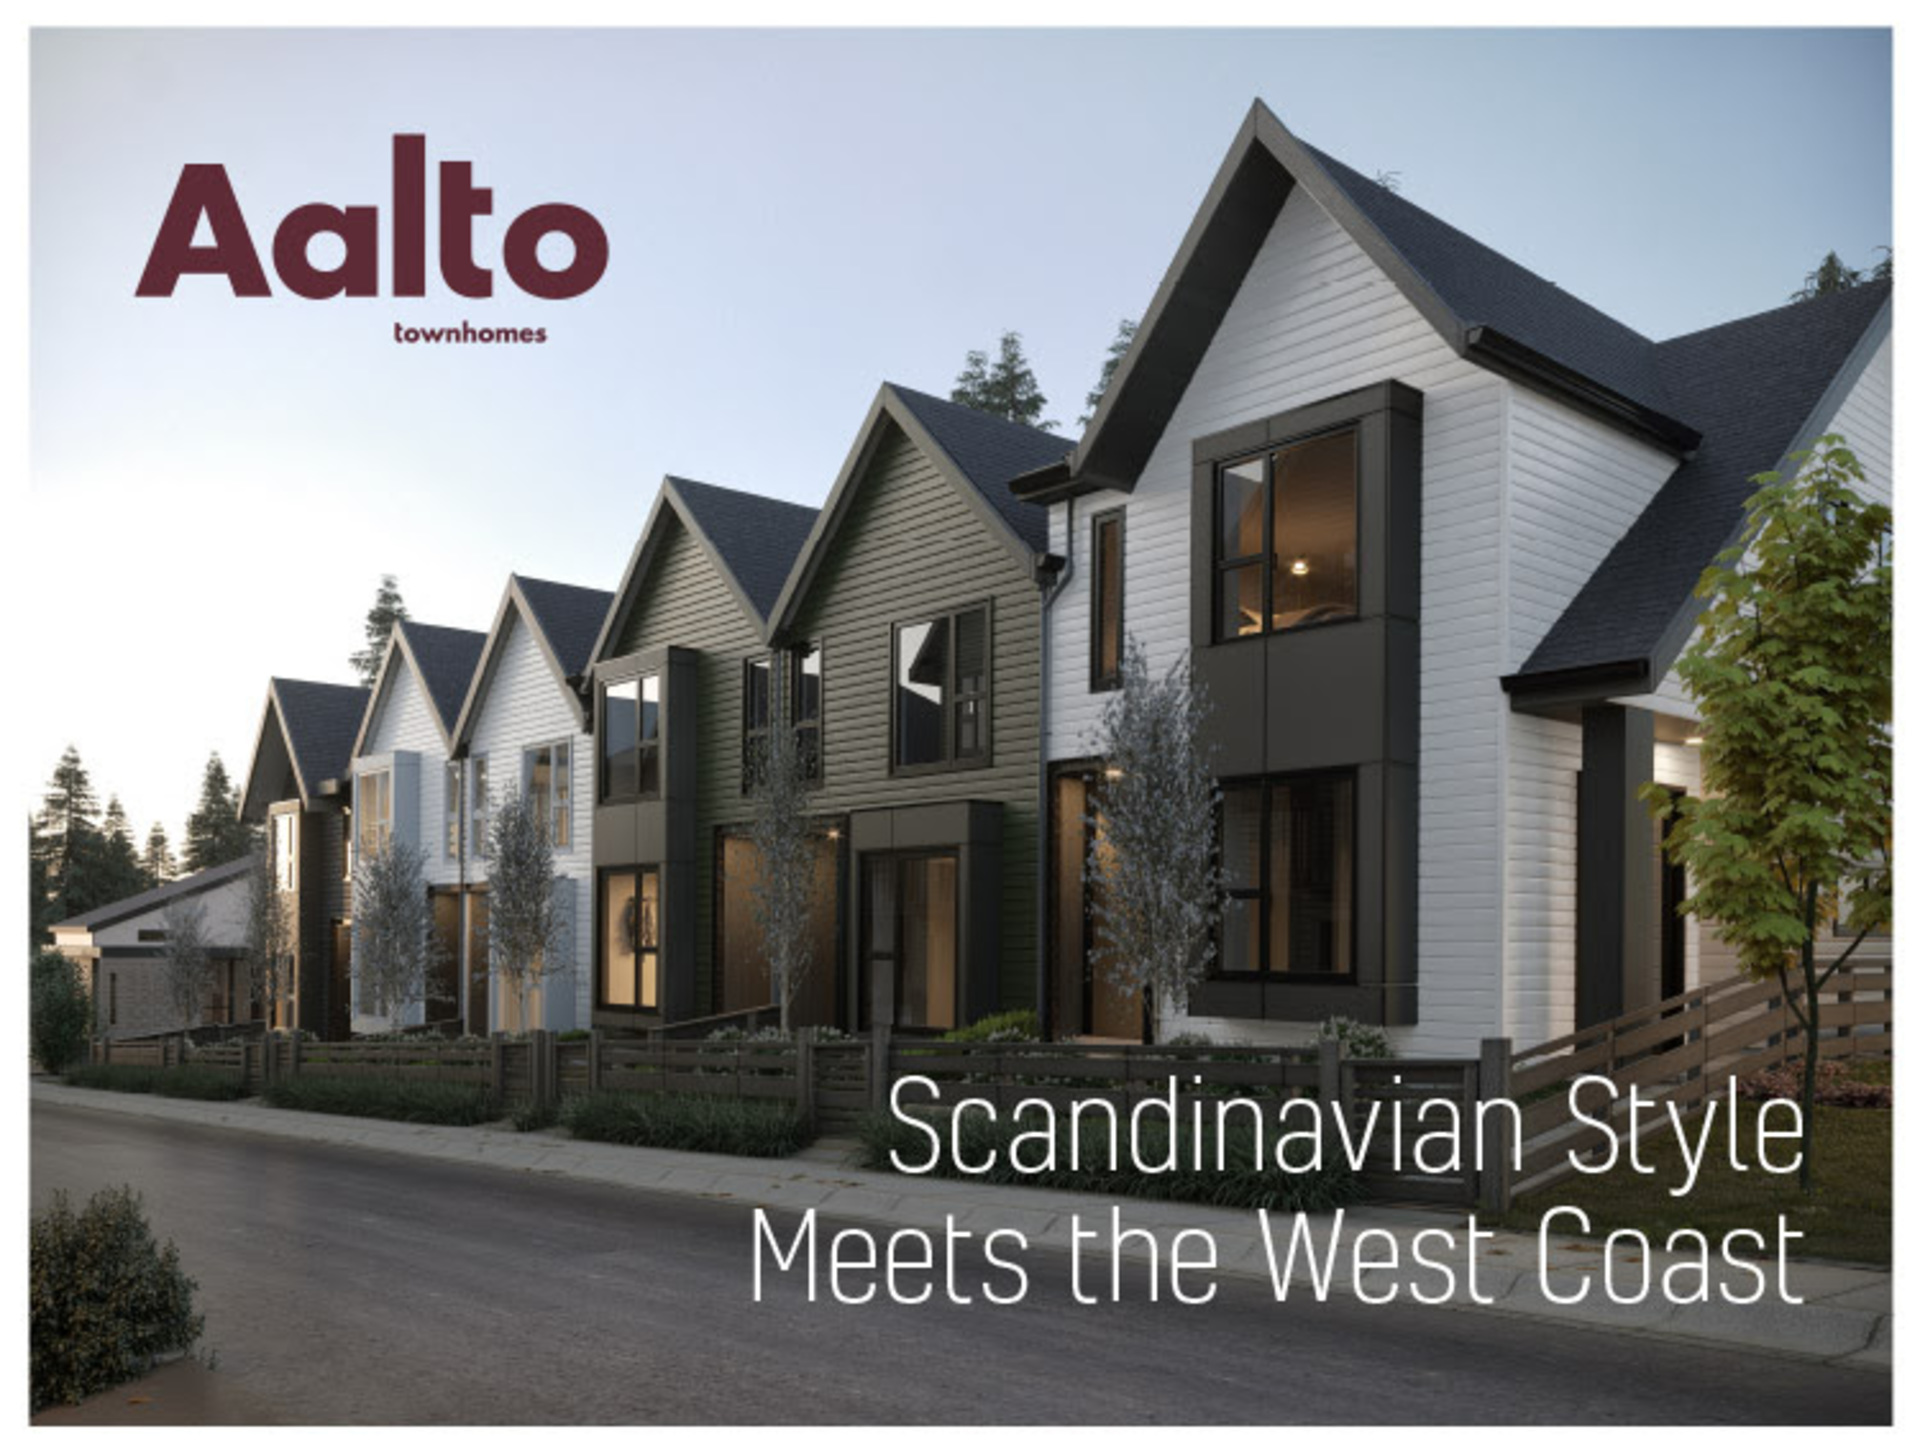 aalto-townhomes-by-intracorp at Aalto Townhomes (1228 Hudson Street, Coquitlam)